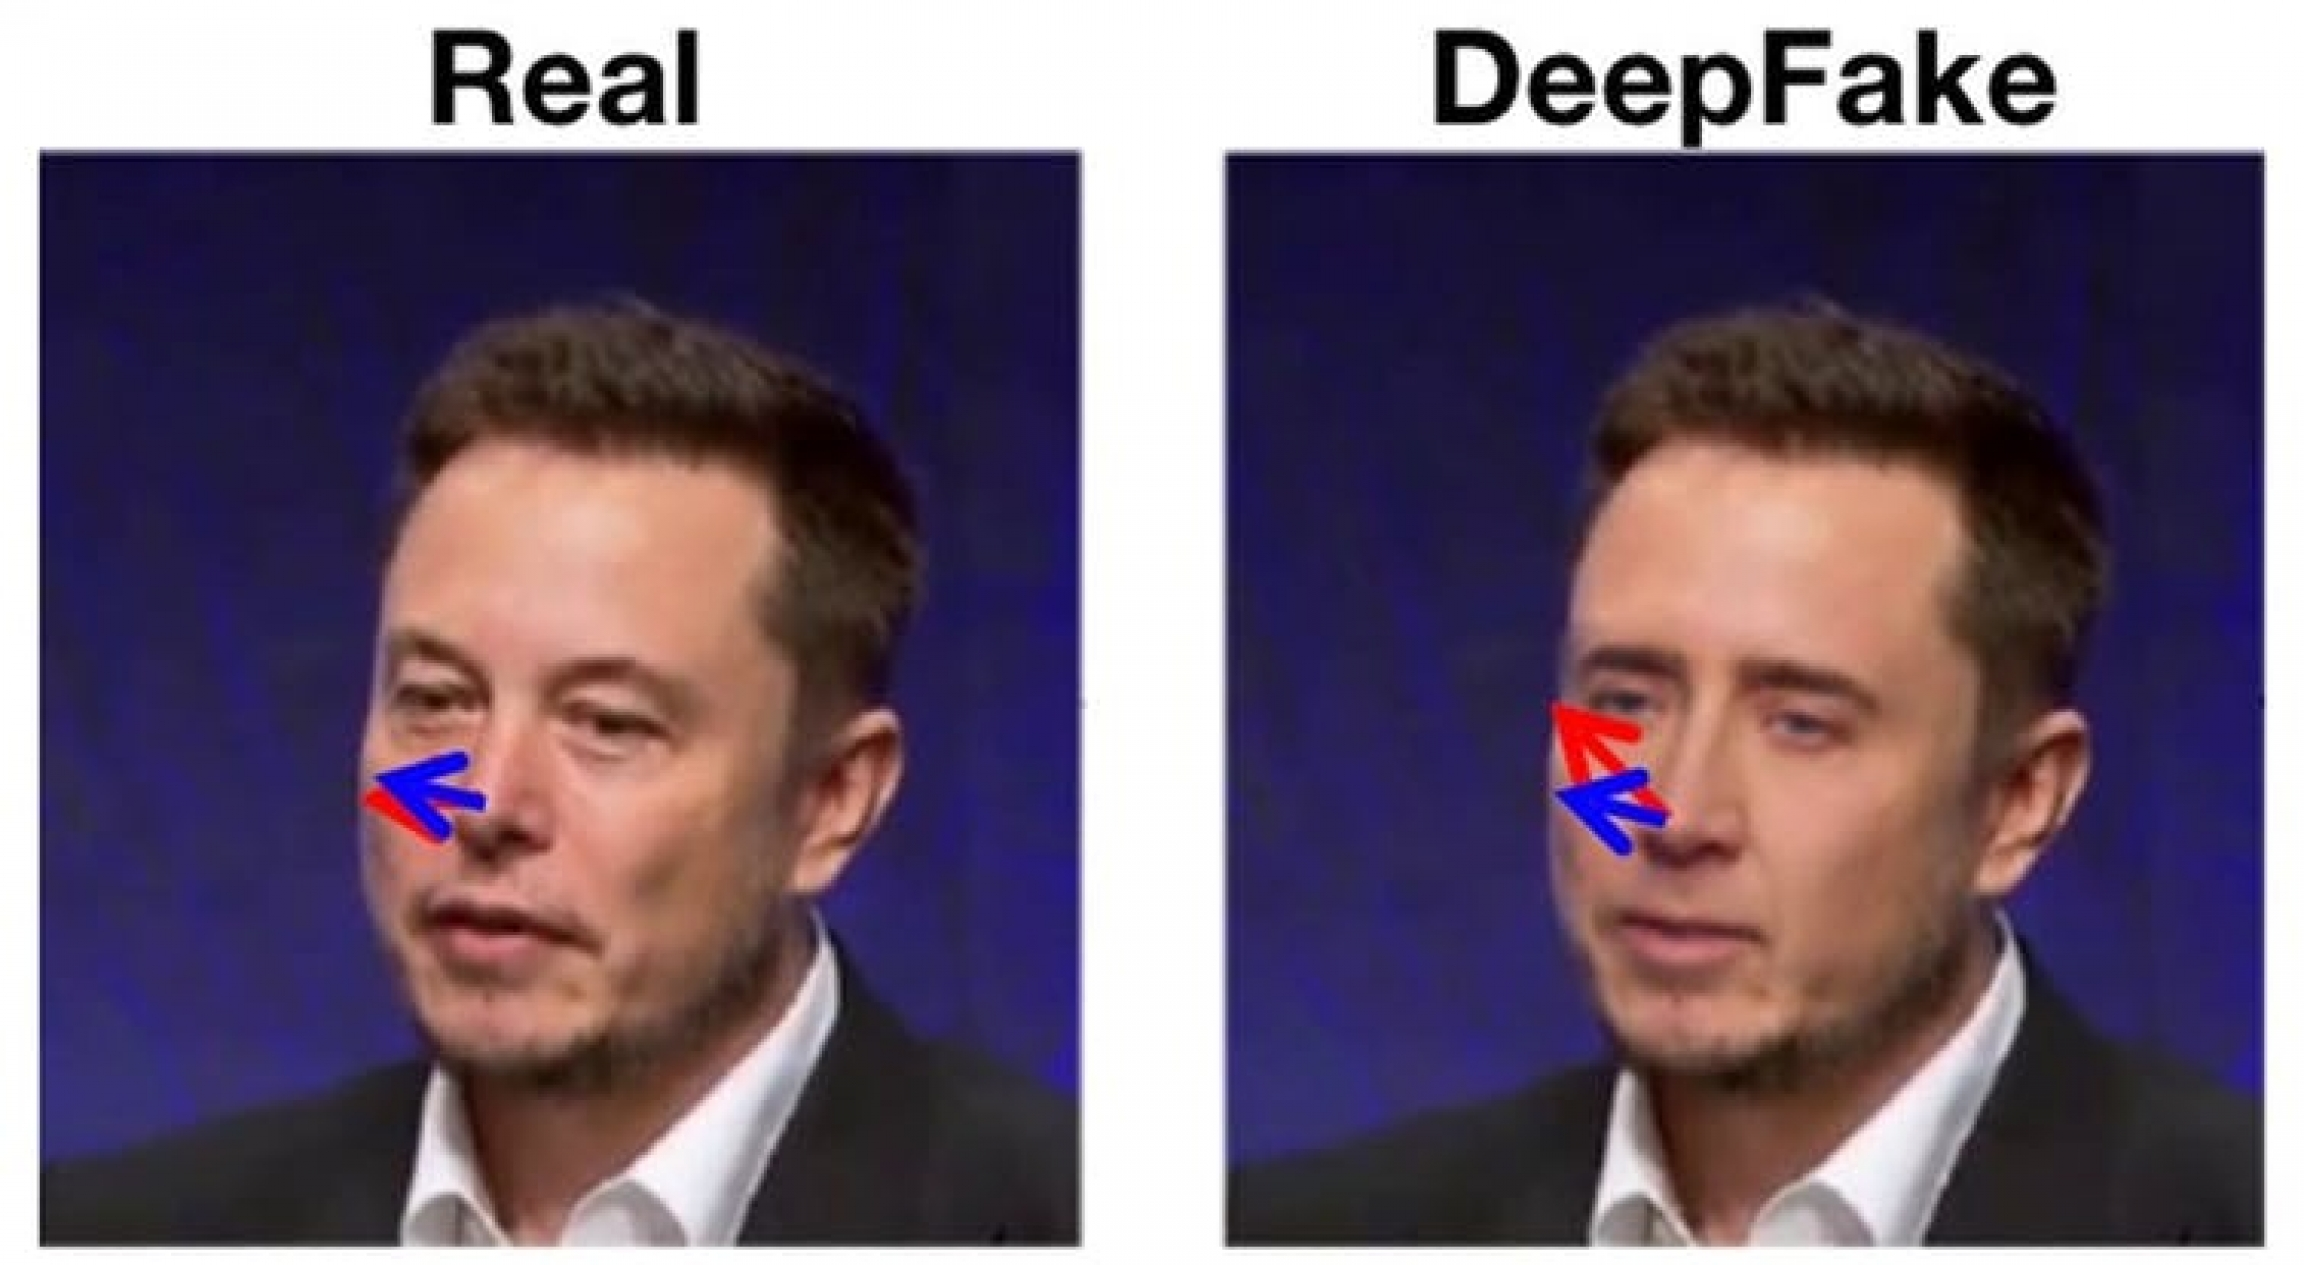 Nic Cage's head on Elon Musk's body